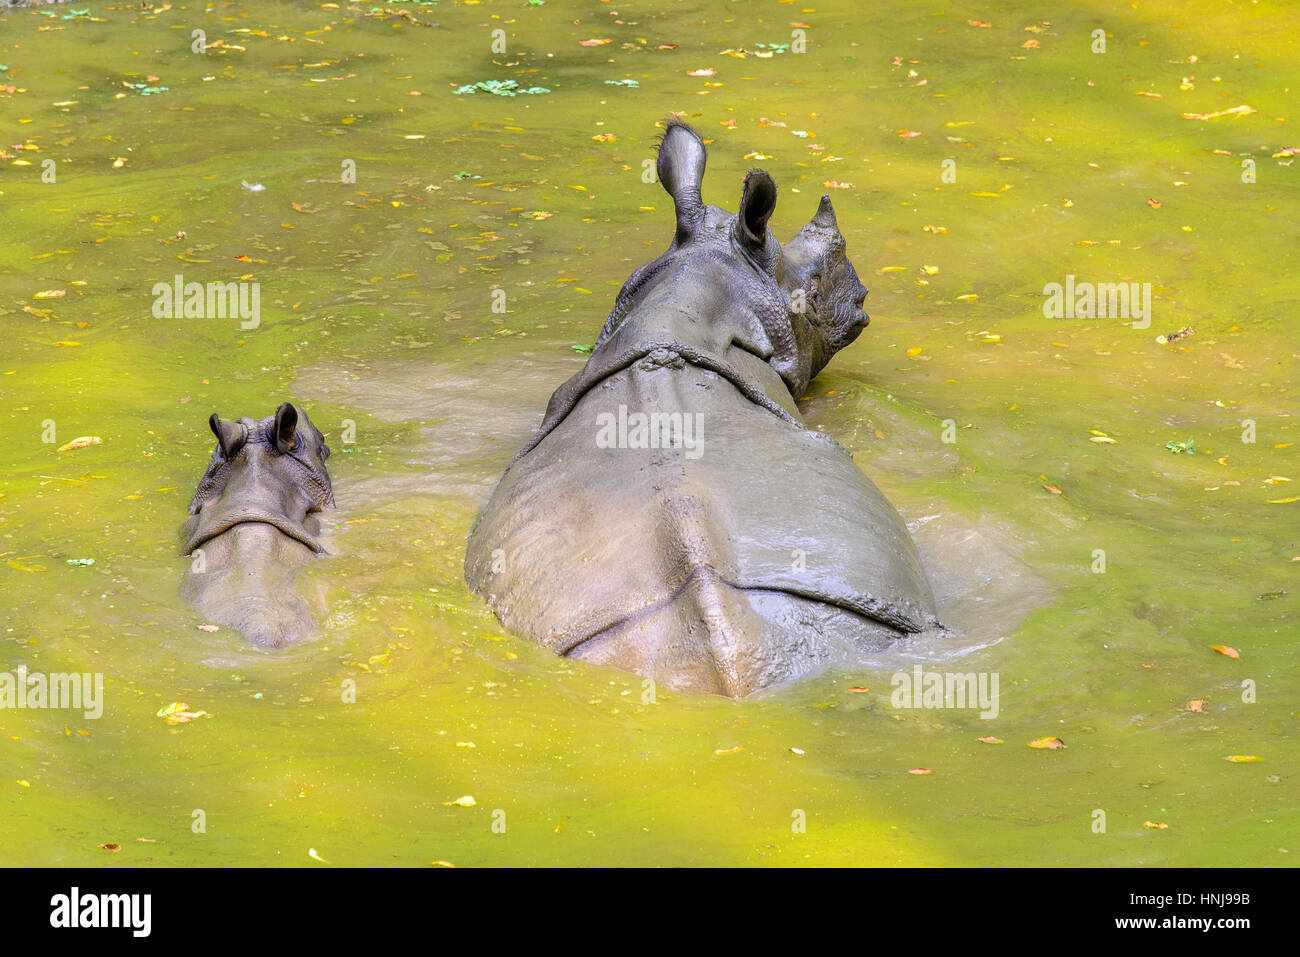 Rhinoceros with young in Chitwan Nationalpark, Nepal - Stock Image